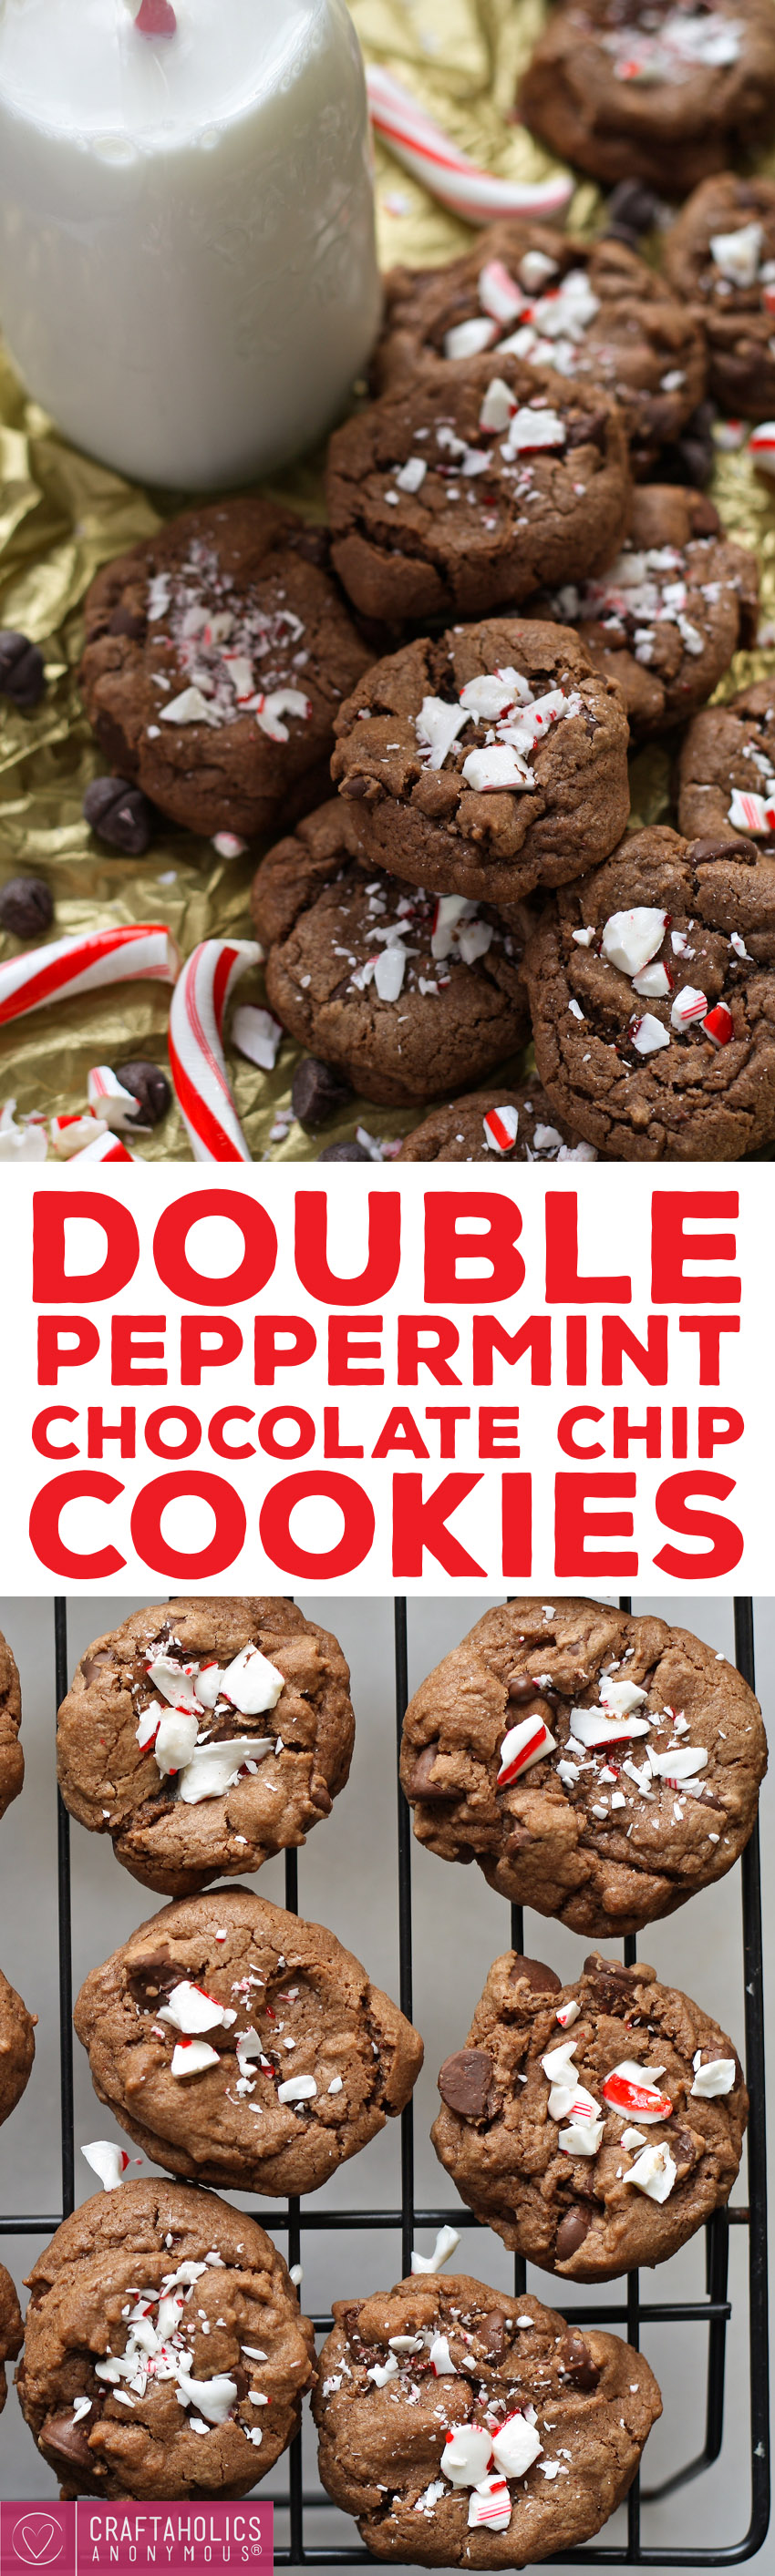 Double Peppermint Chocolate Chip Cookies - perfect for Christmas cookie season!